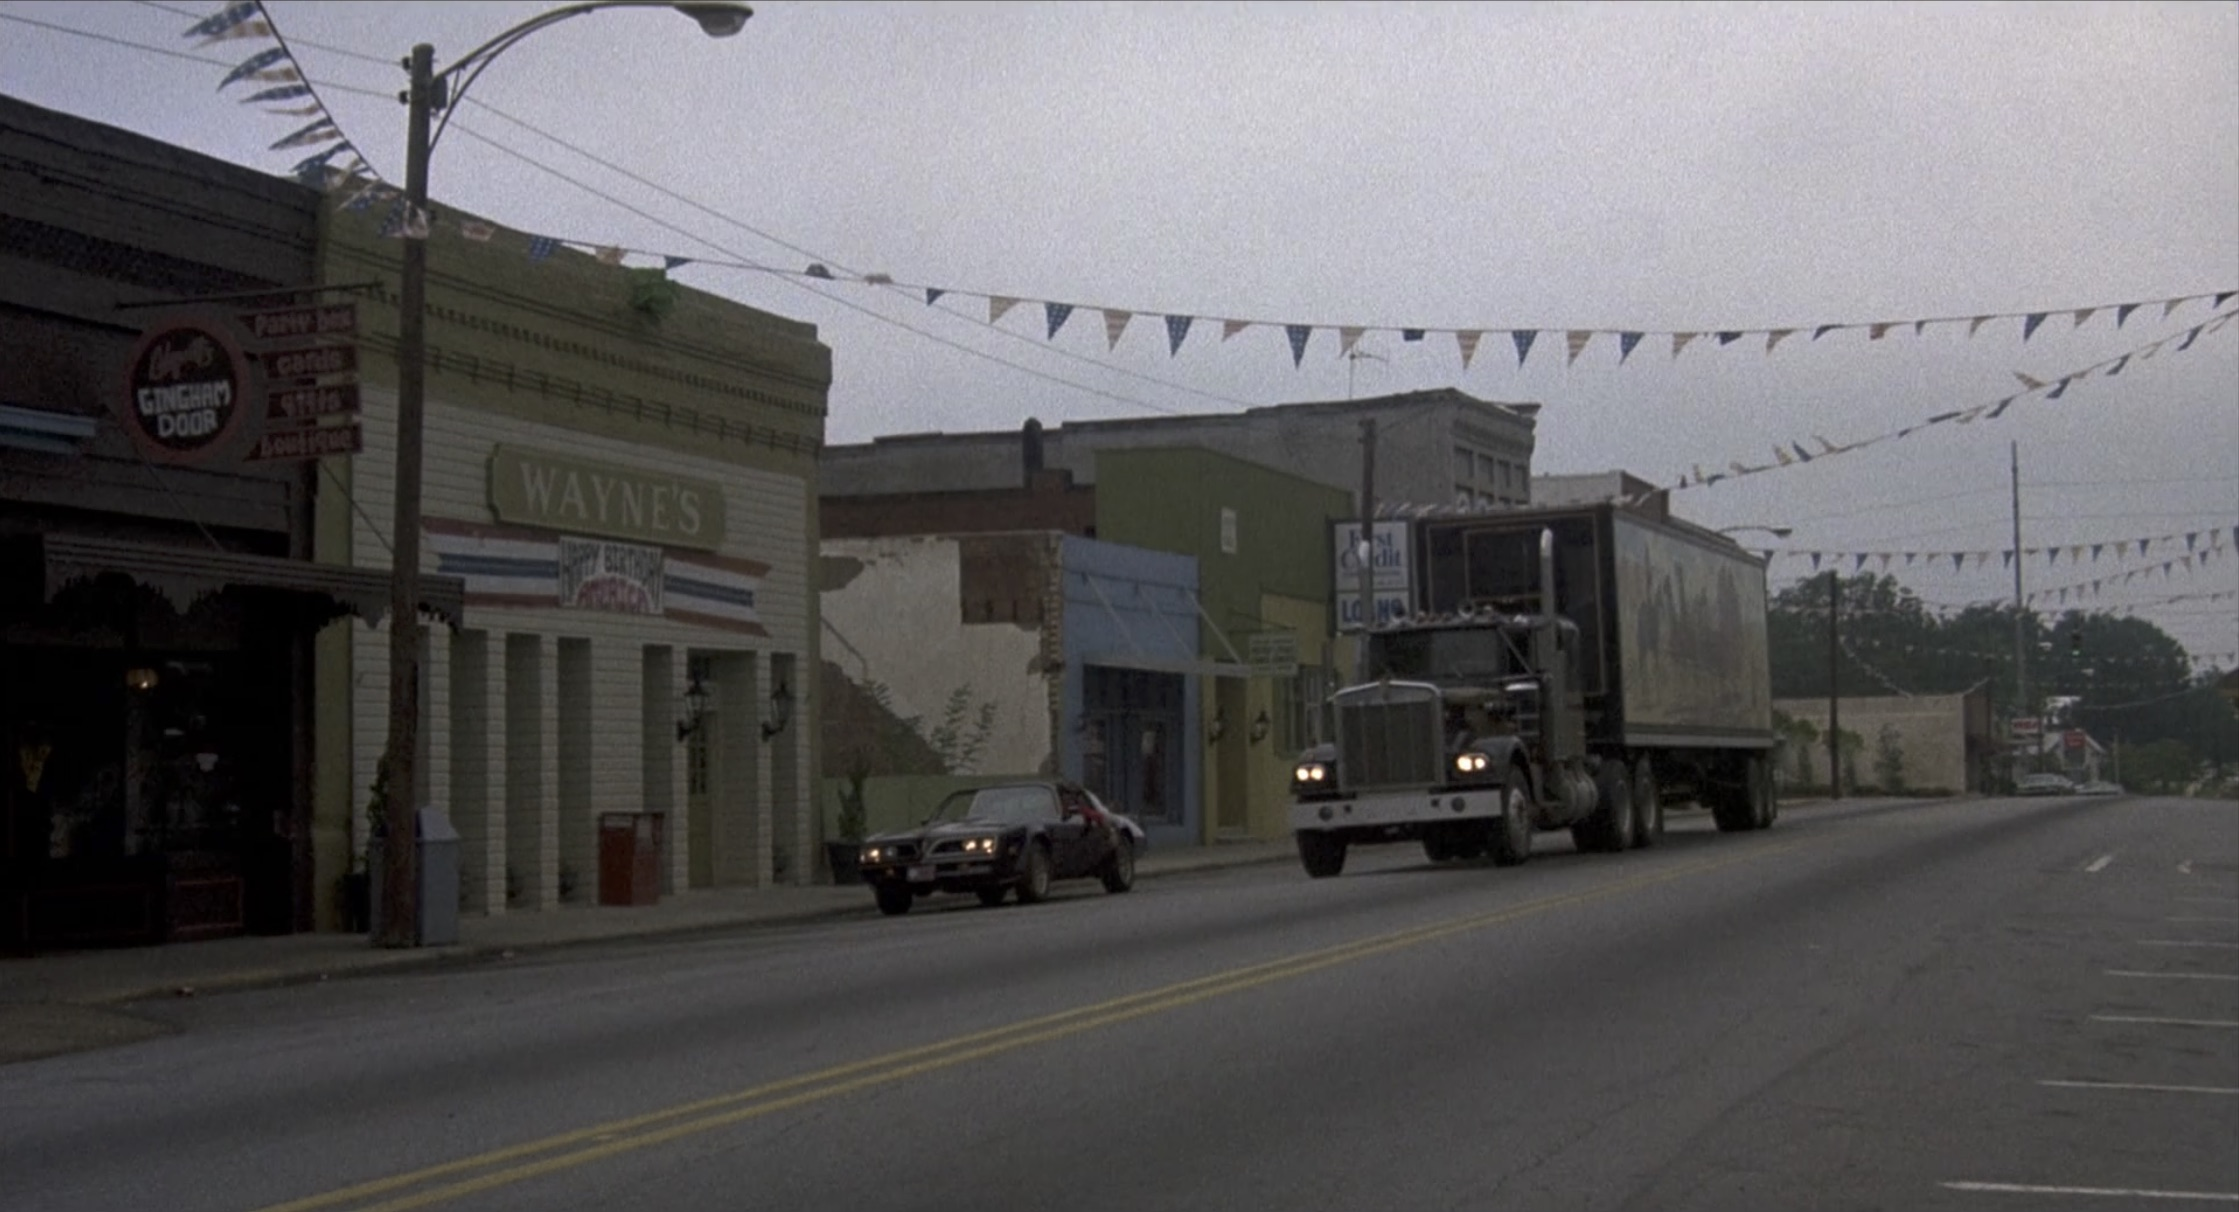 Smokey and the bandit trans am and semi in town